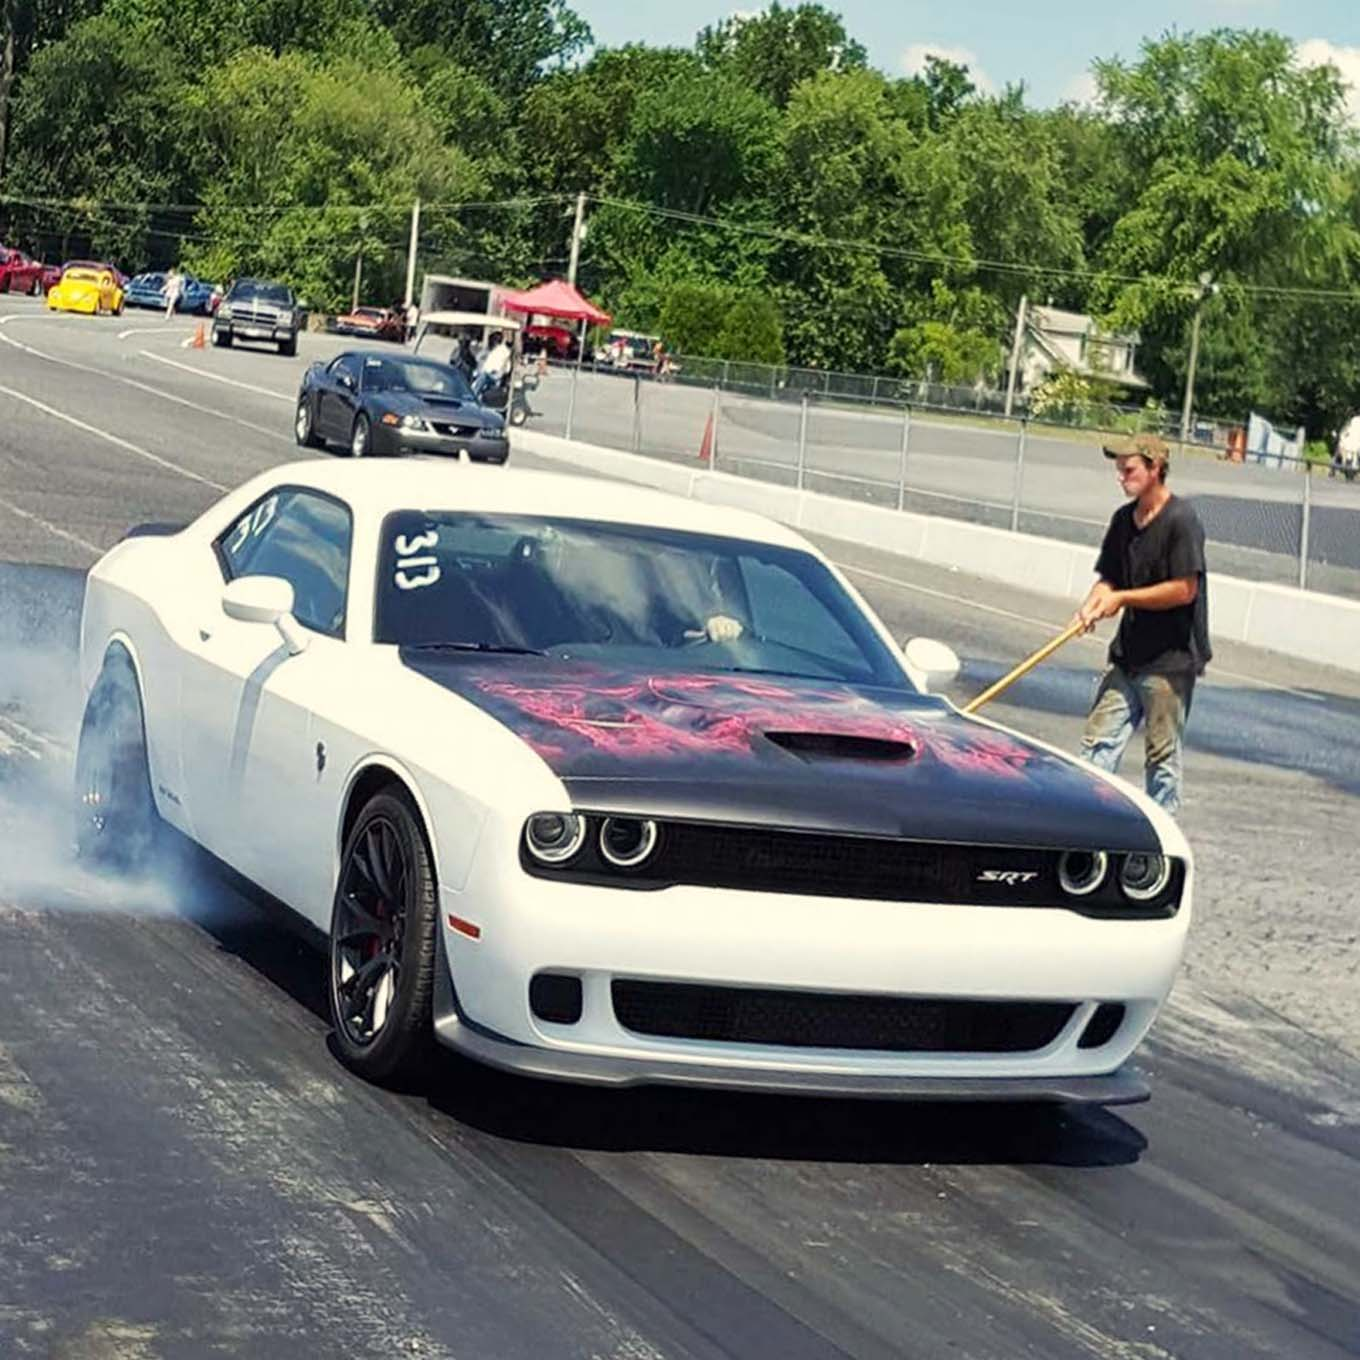 Schwartz did some additional tuning at Cecil County Raceway. His goal was to break this 'Cat out of its cage and step down into the single digits in the quarter-mile. His first go at it got the Hellcat to 10 seconds flat. With a little more tweaking Schwartz set a new bar for Hellcat performance with a national Hellcat record of 9.75 seconds in the quarter-mile.